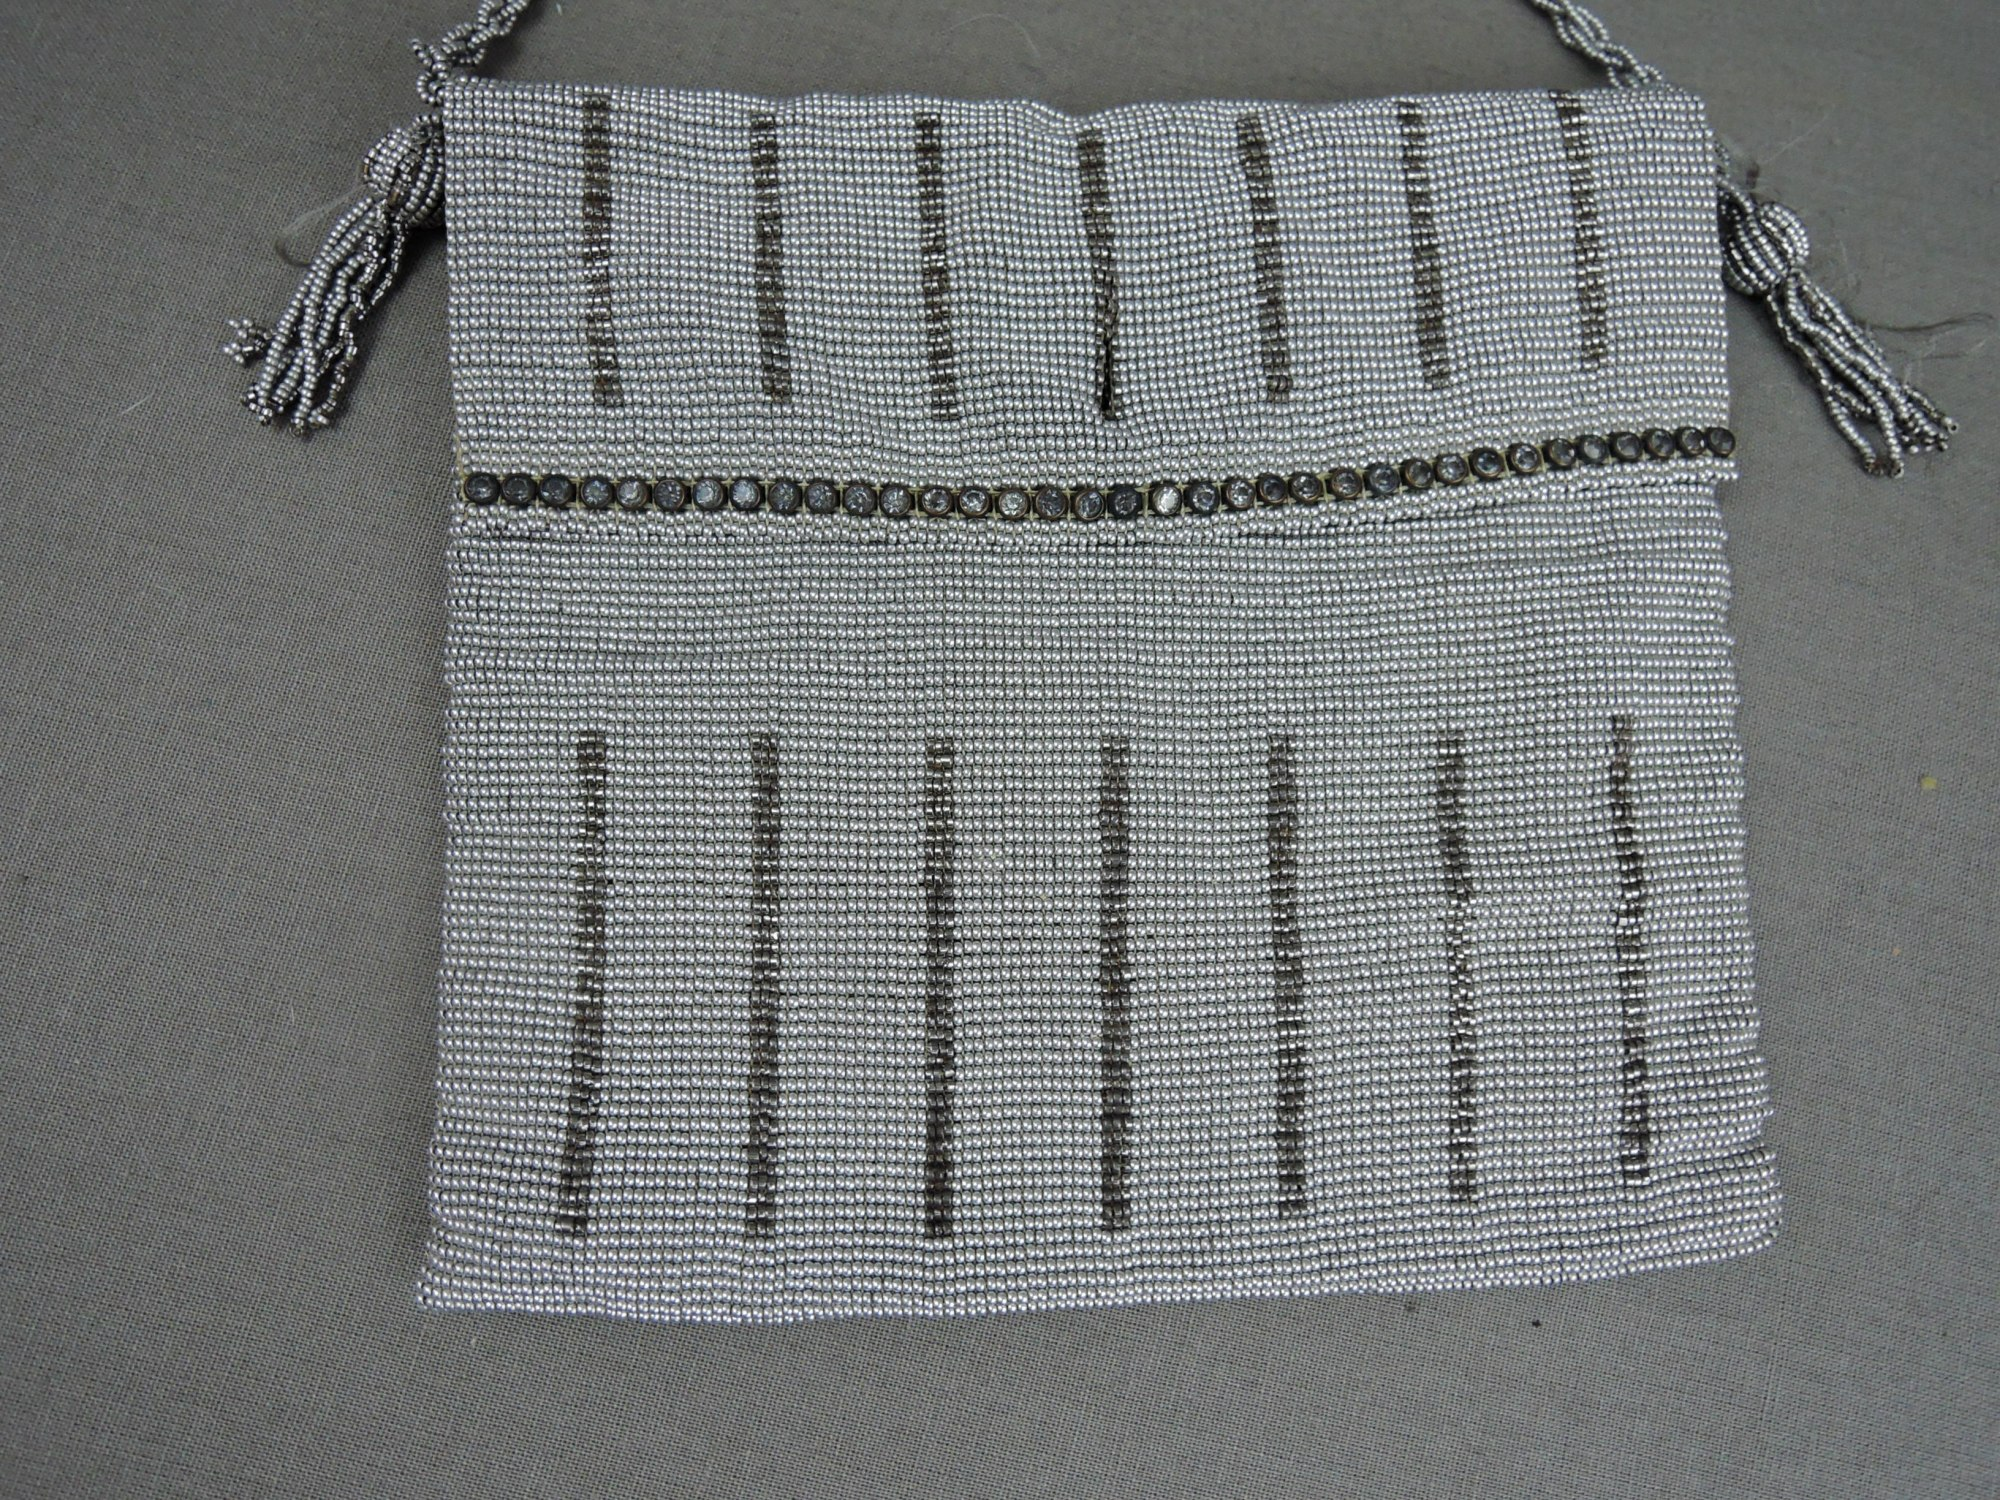 Antique Silver Beaded Purse 1920s with Rhinestones, needs new lining